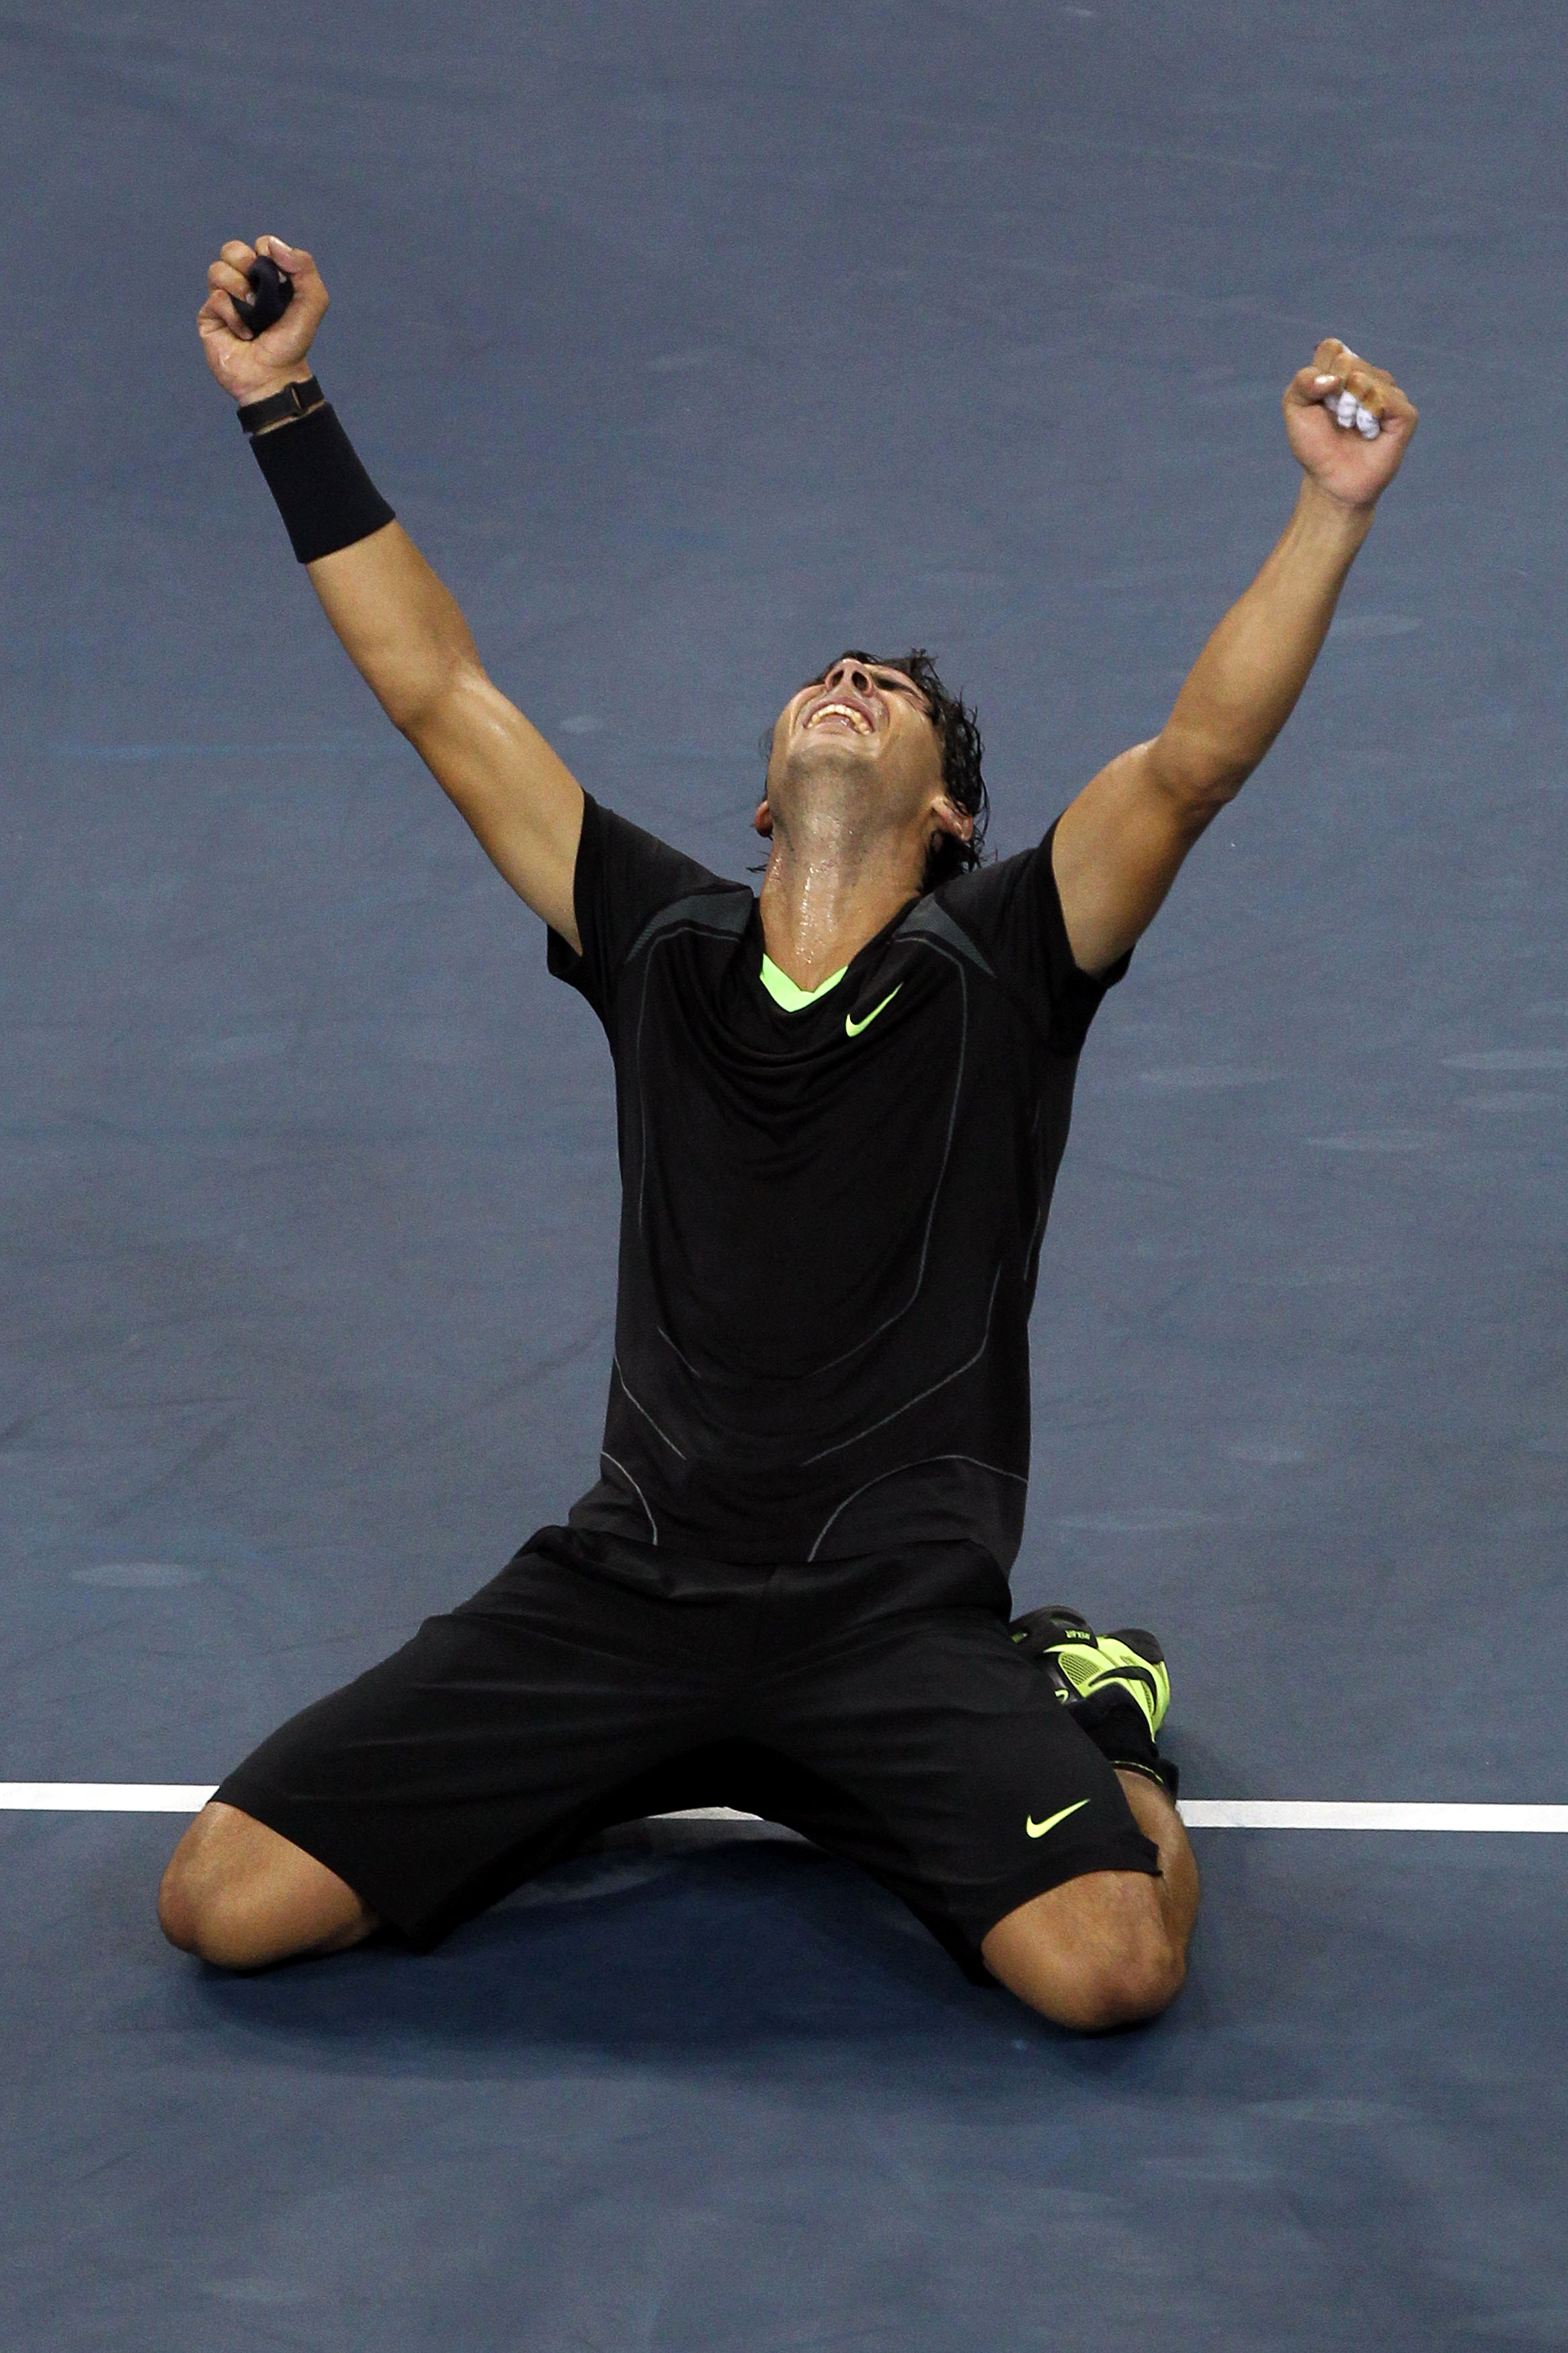 NEW YORK - SEPTEMBER 13:  Rafael Nadal of Spain falls to his knees in celebration of his win over Novak Djokovic of Serbia during their men's singles final on day fifteen of the 2010 U.S. Open at the USTA Billie Jean King National Tennis Center on Septemb